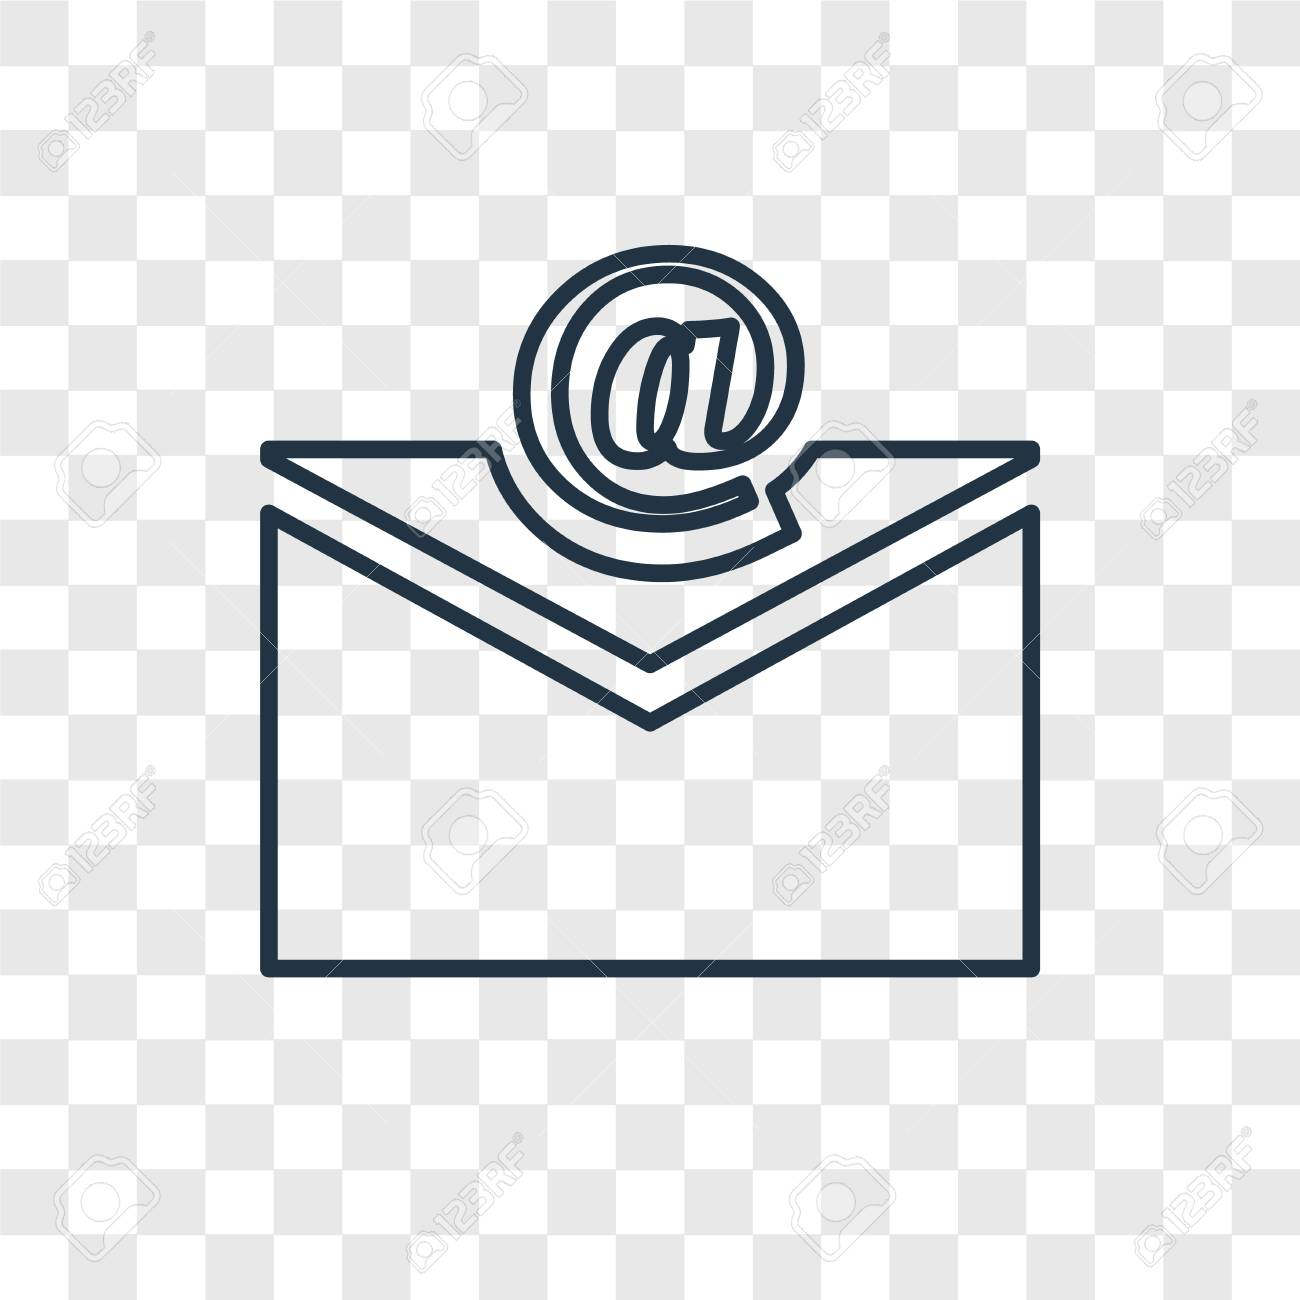 Email Concept Vector Linear Icon Isolated On Transparent Background Royalty Free Cliparts Vectors And Stock Illustration Image 111529448